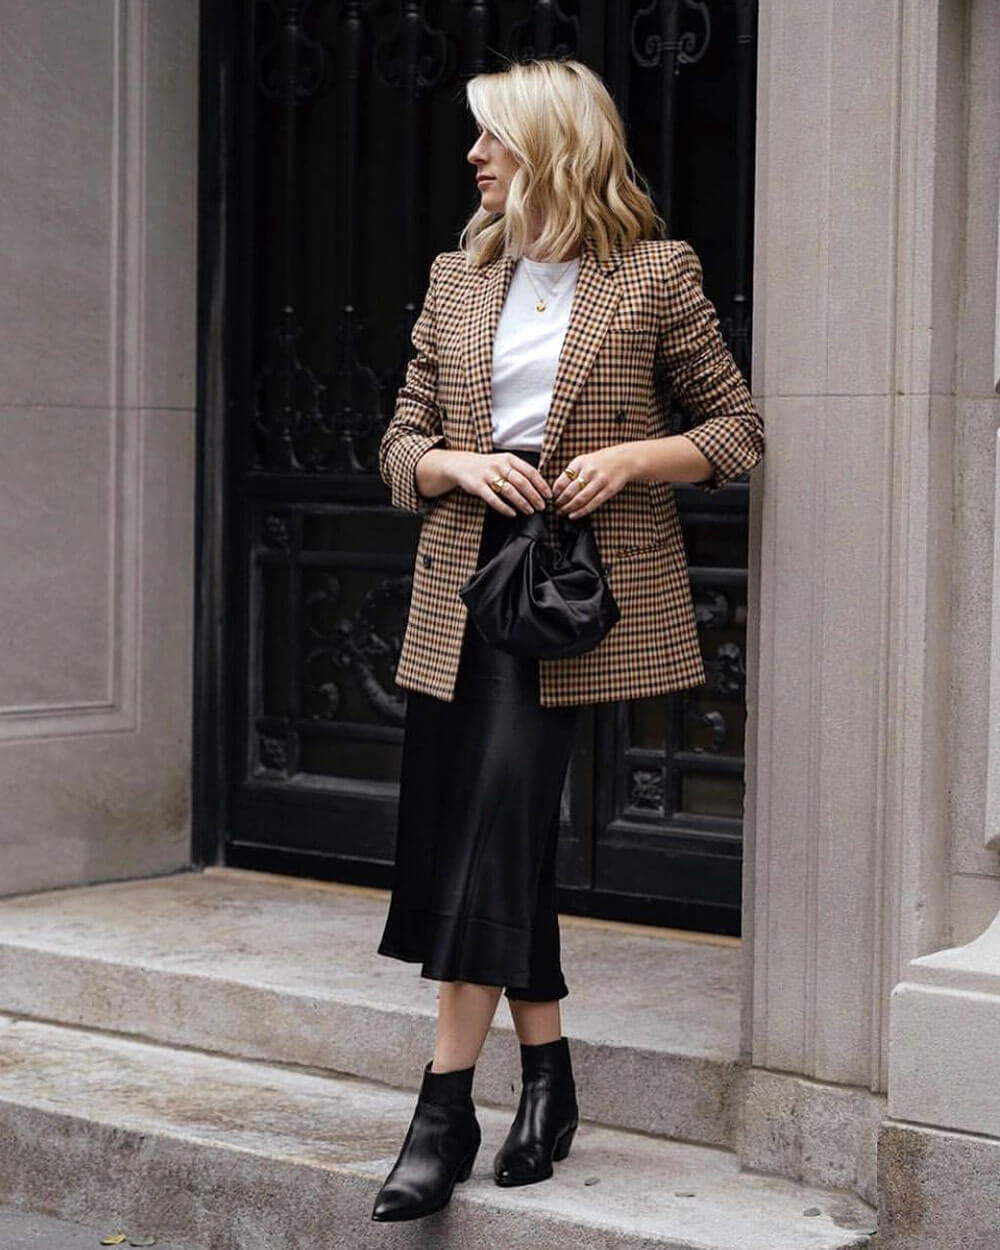 Dark academia fashion style in black and brown